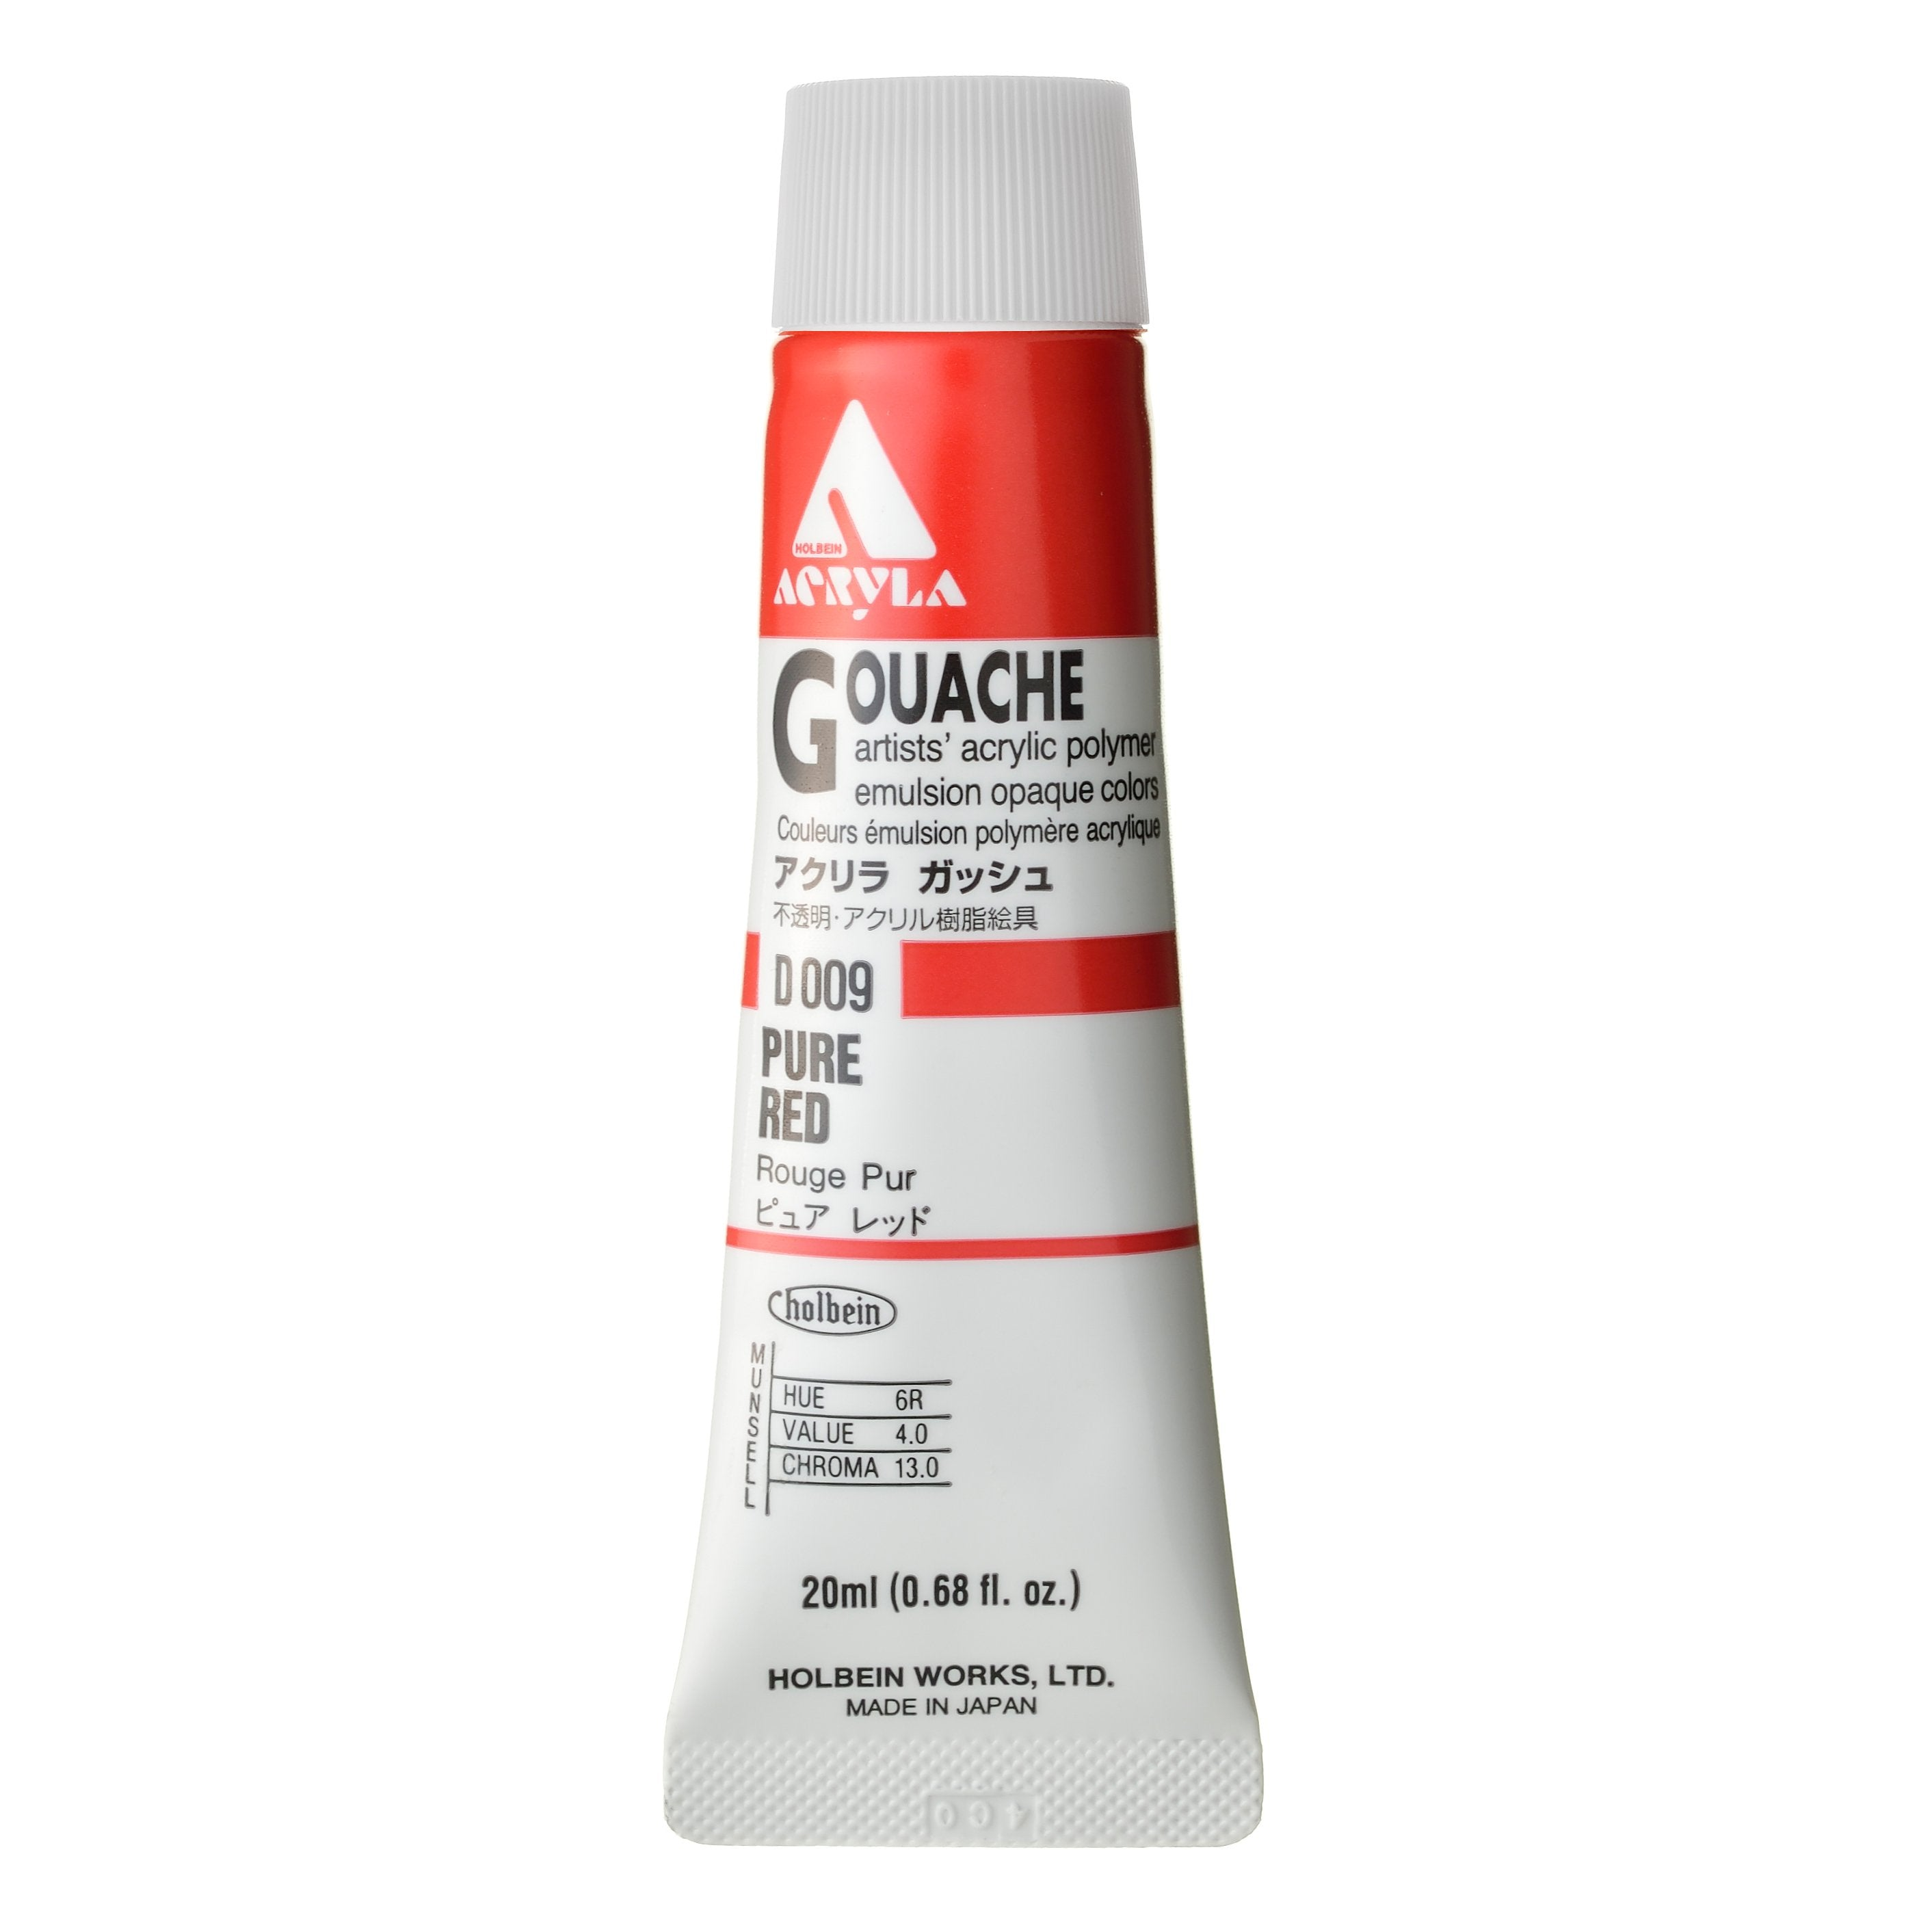 Holbein Acryla Gouache, 20ml, Pure Red